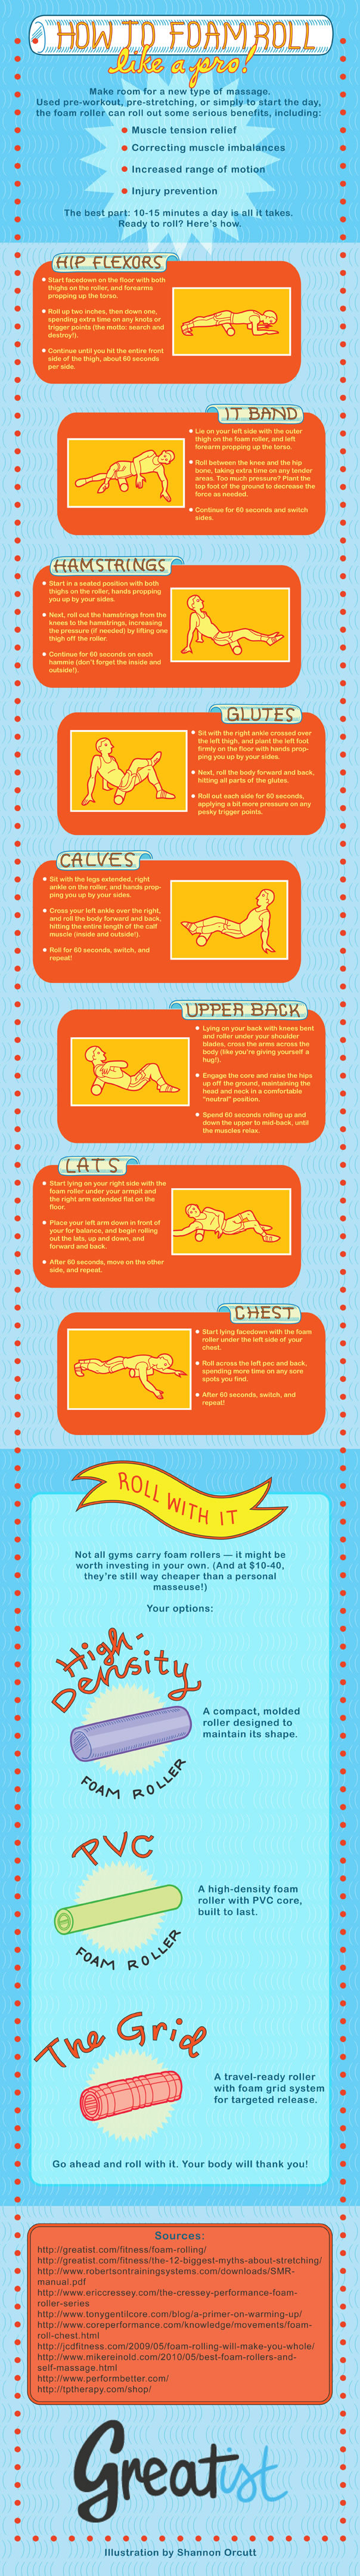 Foam-Rolling-Infographic